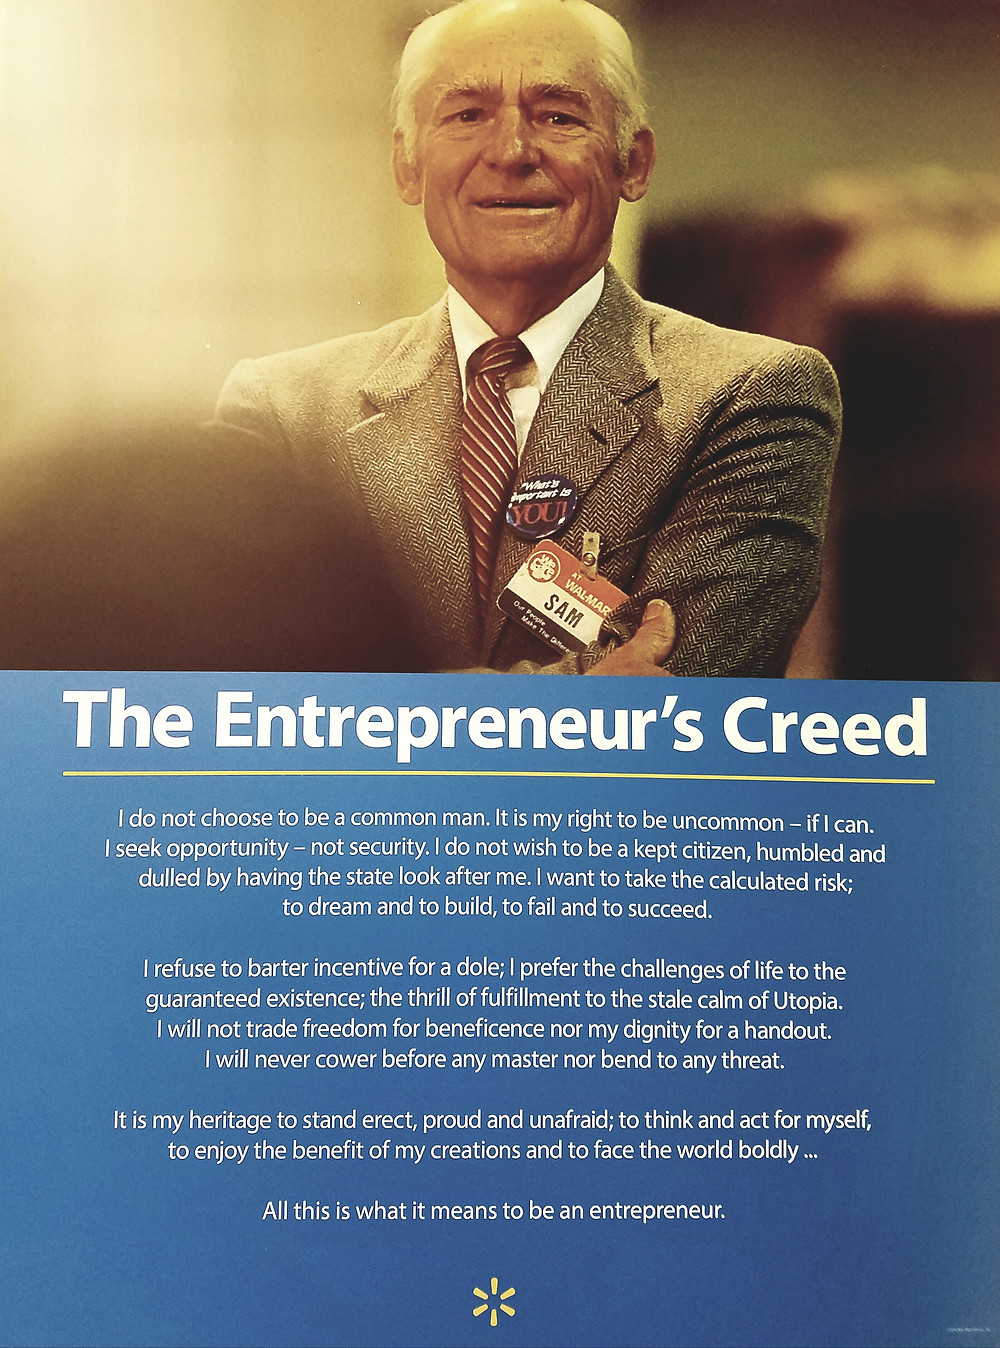 The Entrepreneur's Creed Poster in a Walmart Store